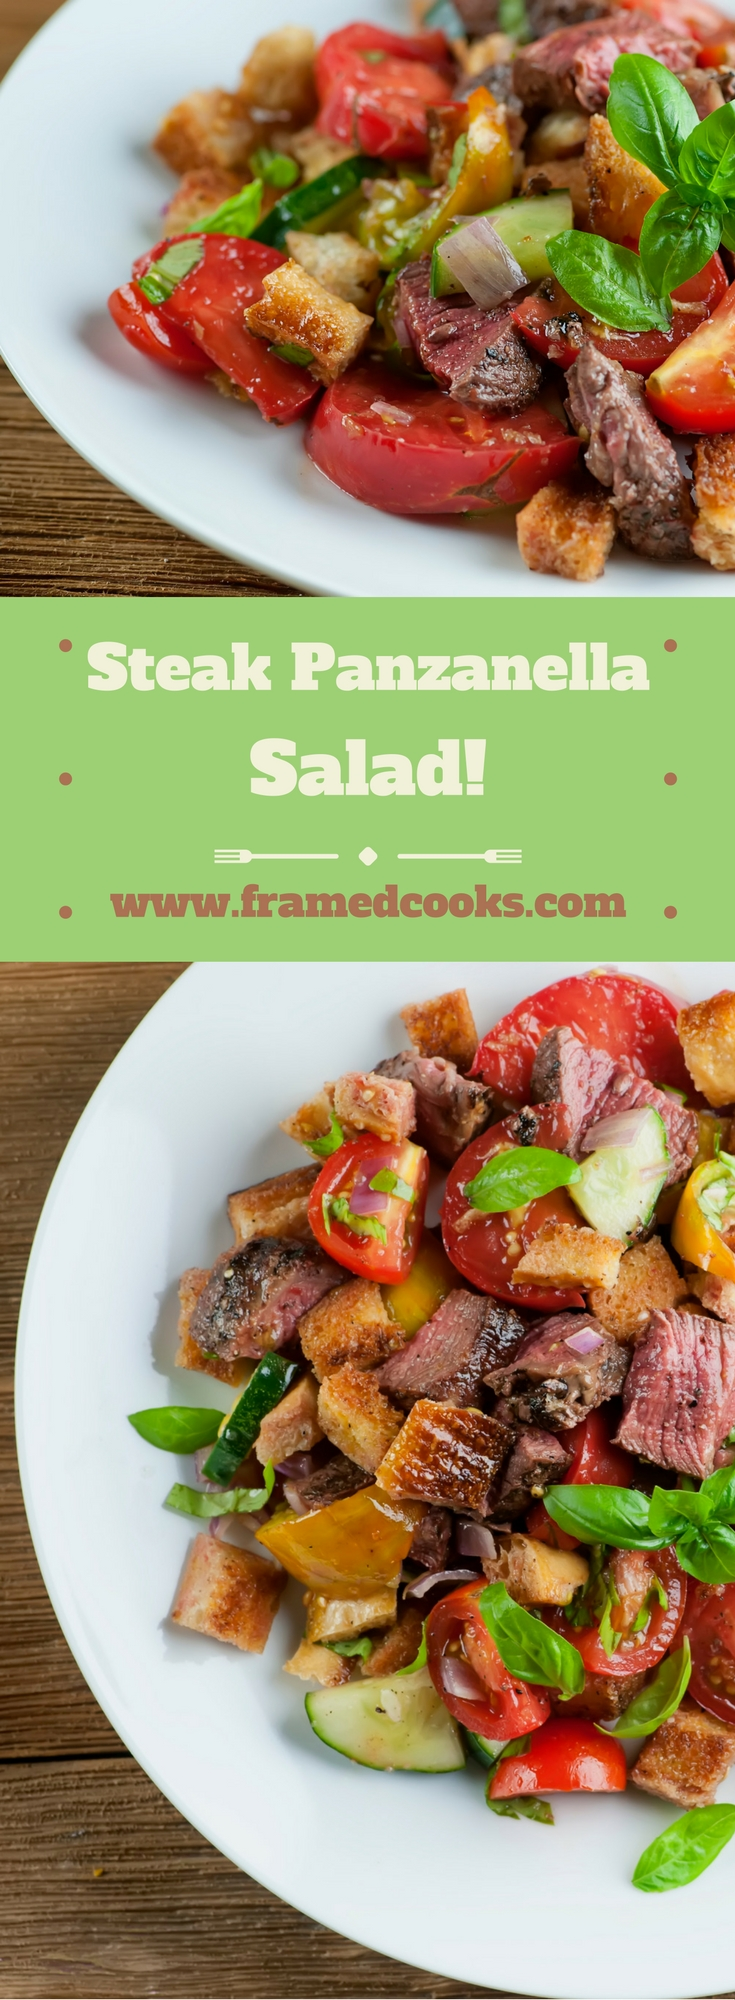 This recipe for steak panzanella salad is a glorious and easy combo of steak, tomatoes, bread and basil.  The perfect summer dinner!